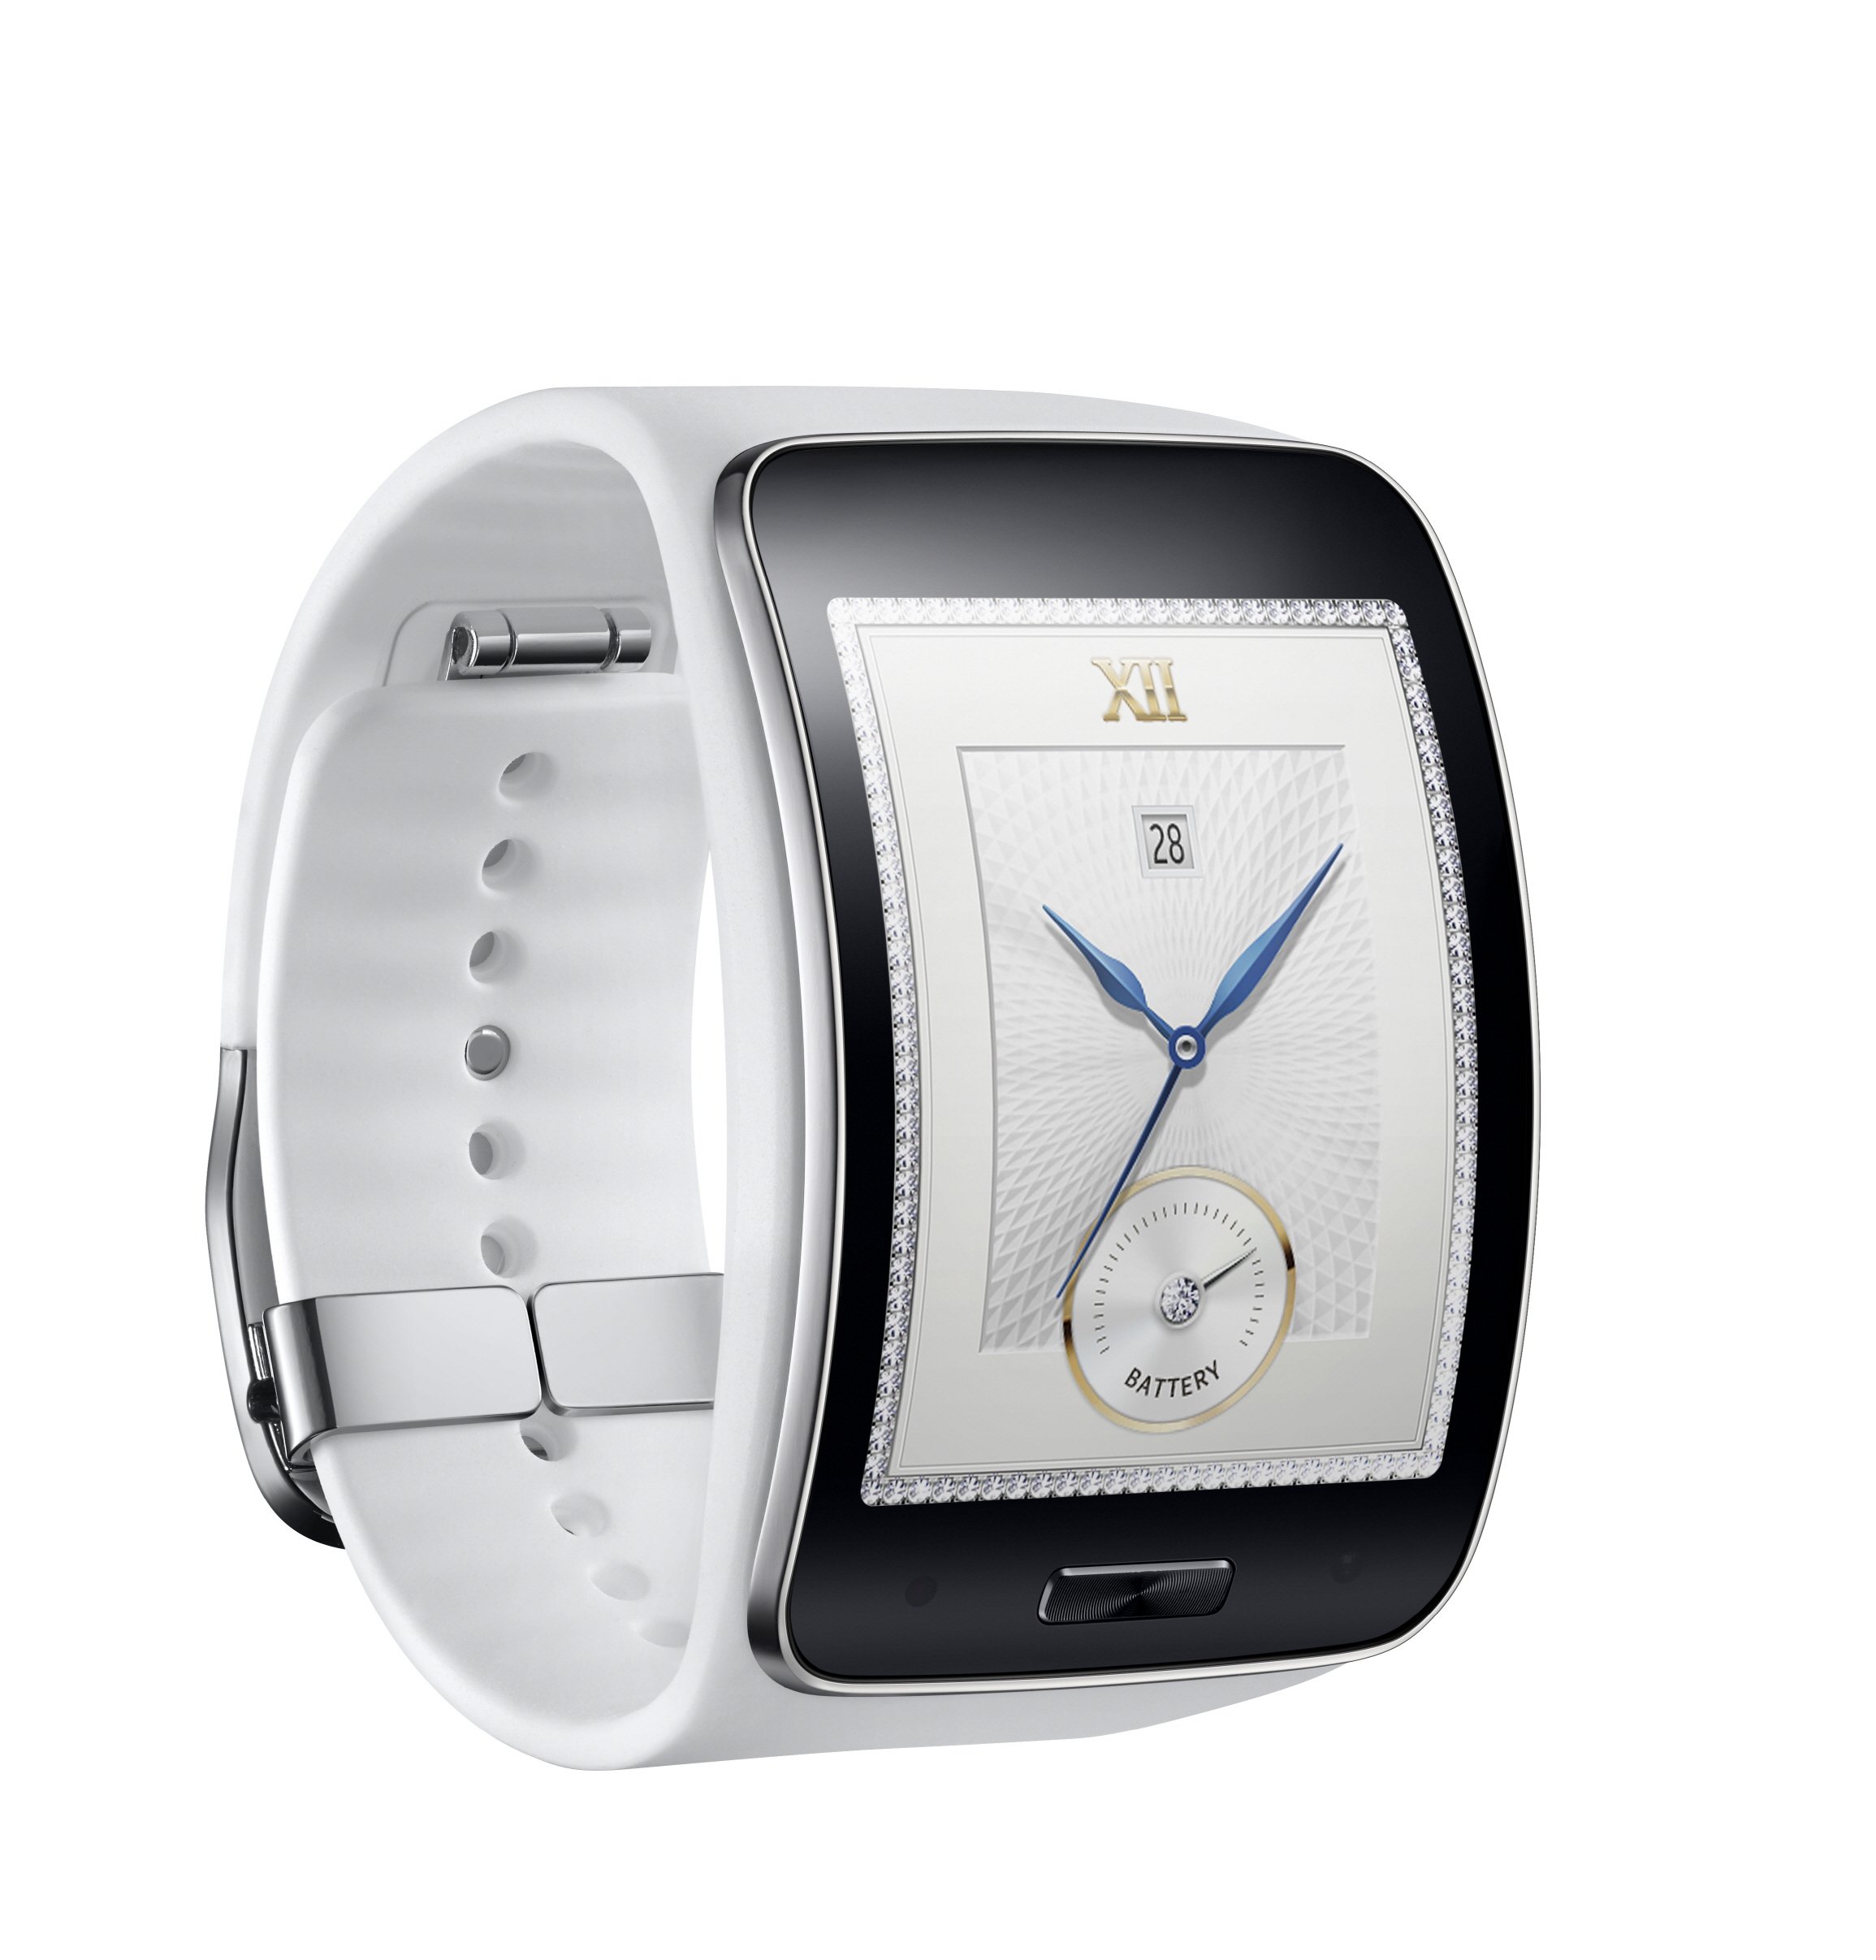 Samsung announces the Gear S, with curved glass and 3G ...